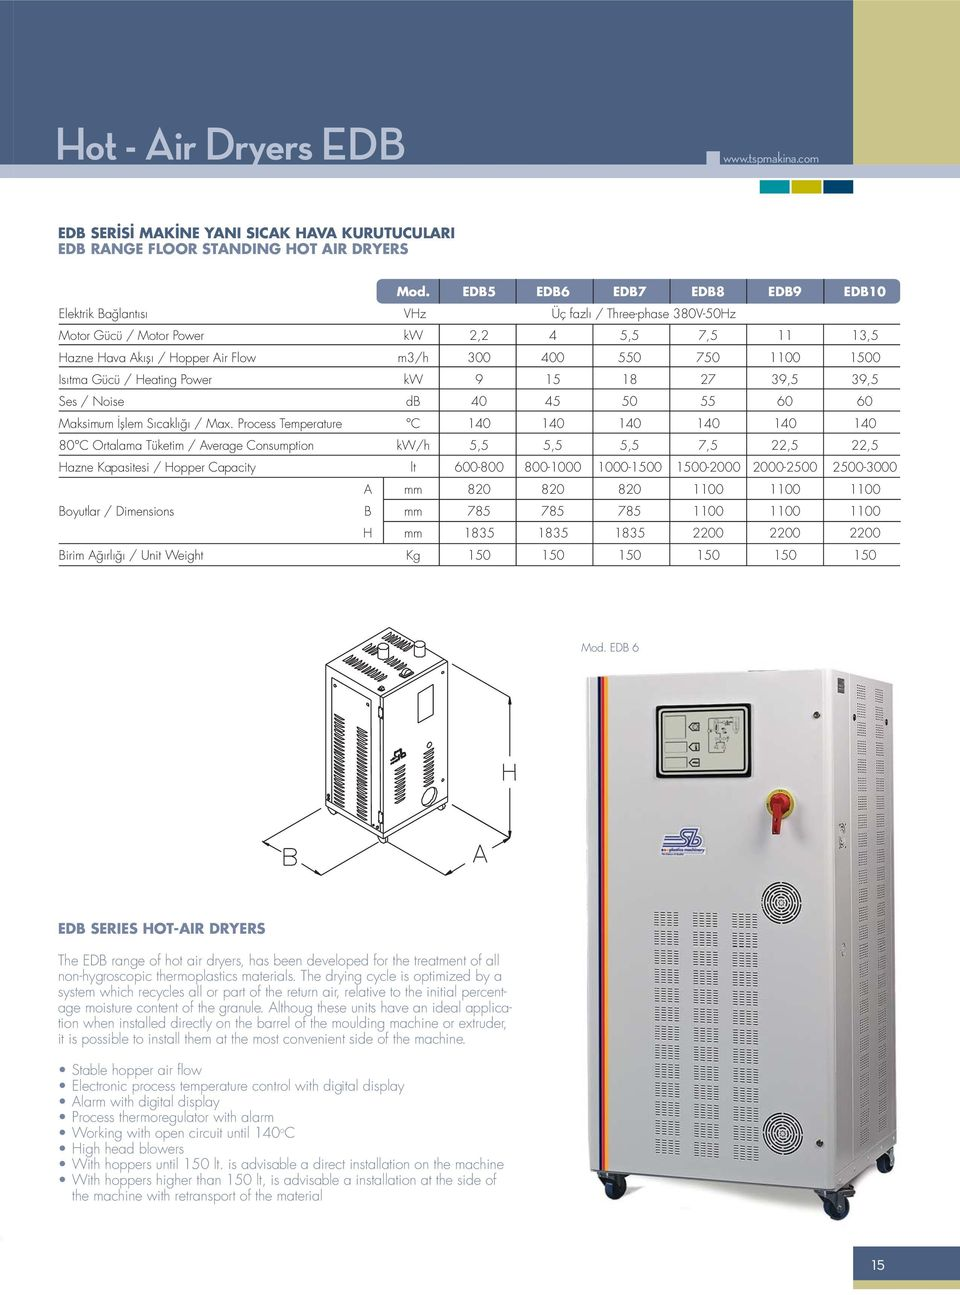 Is tma Gücü / Heating Power kw 9 15 18 27 39,5 39,5 Ses / Noise db 40 45 50 55 60 60 Maksimum lem S cakl / Max.